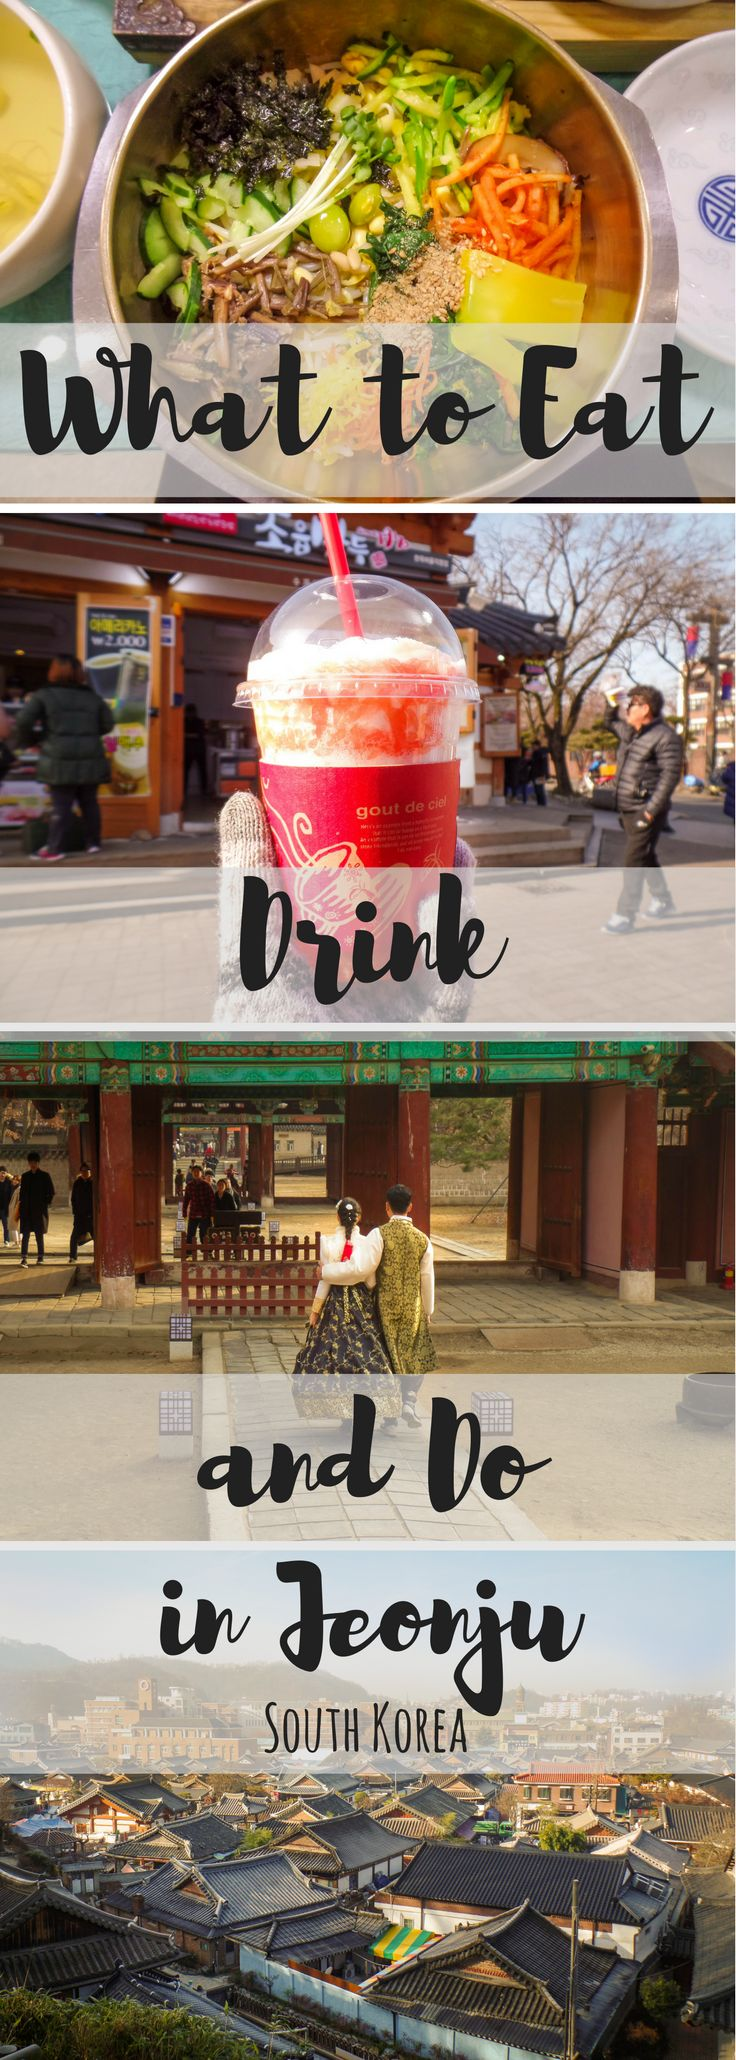 What to Eat, Drink and Do in Jeonju